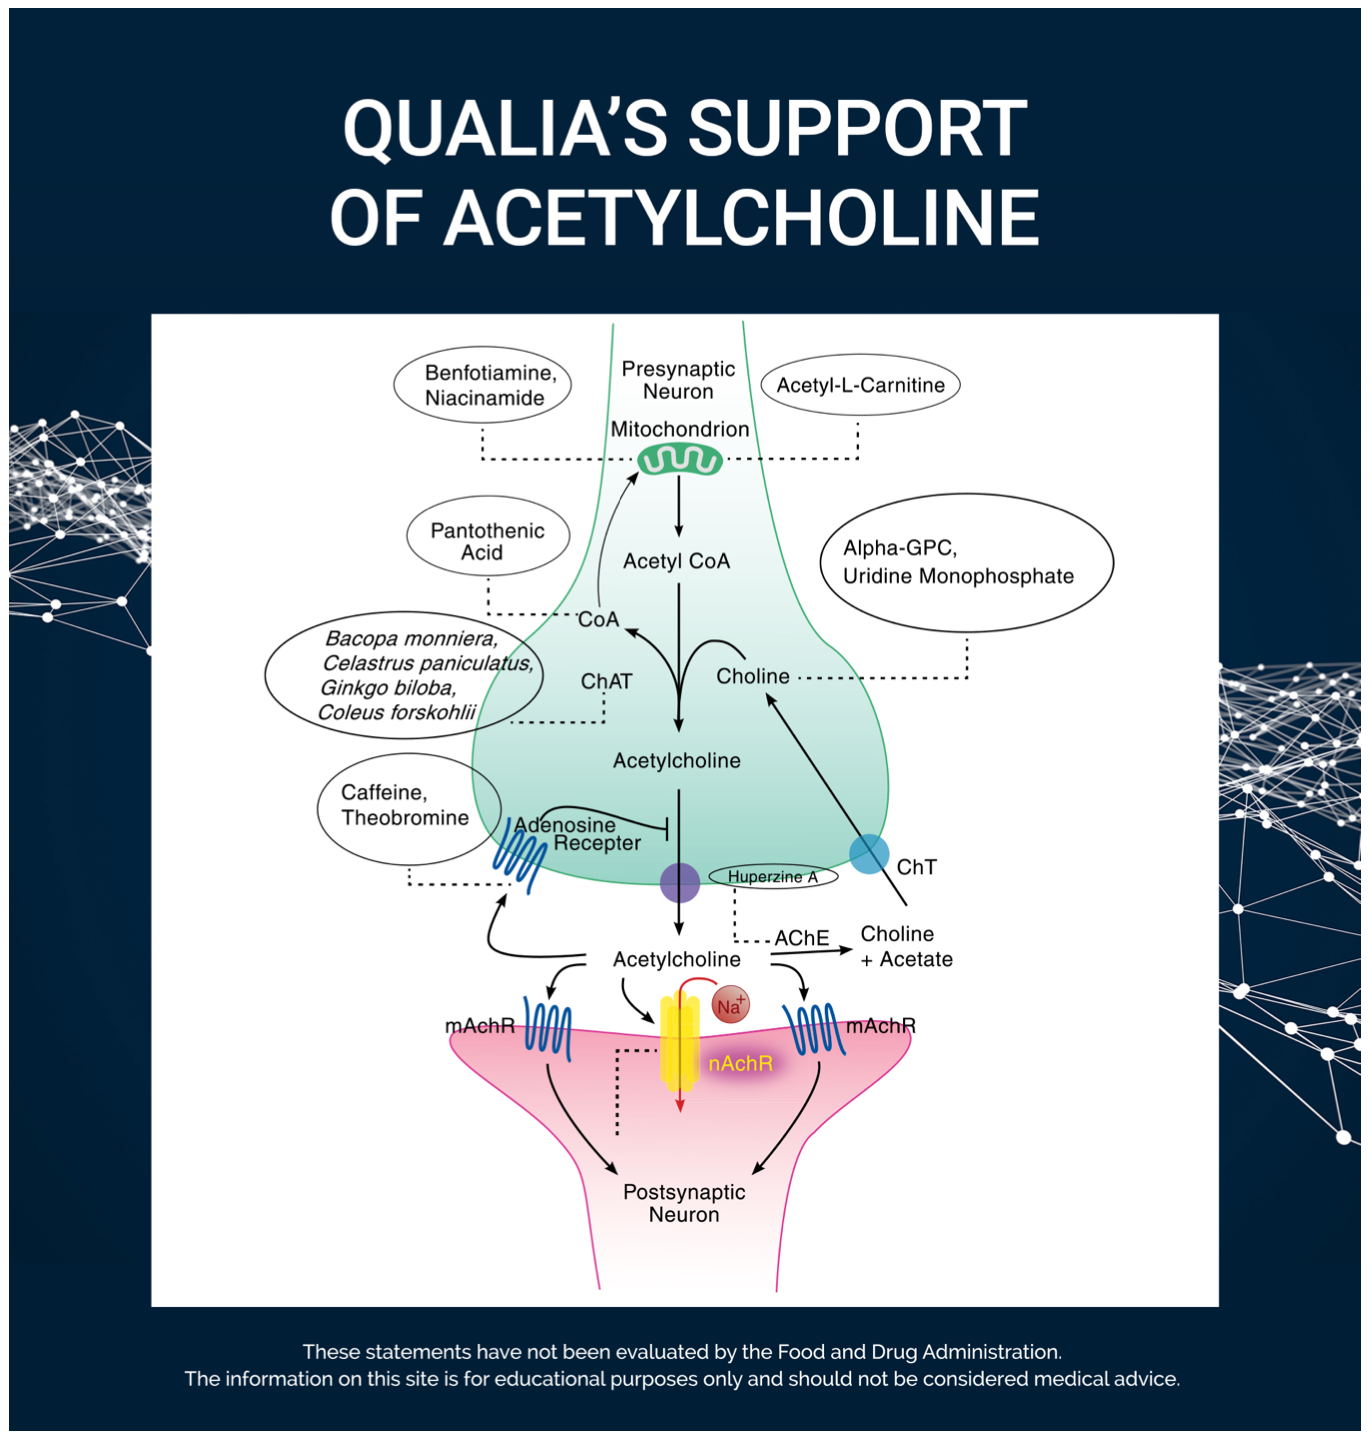 Qualua's support of Acetylcholine